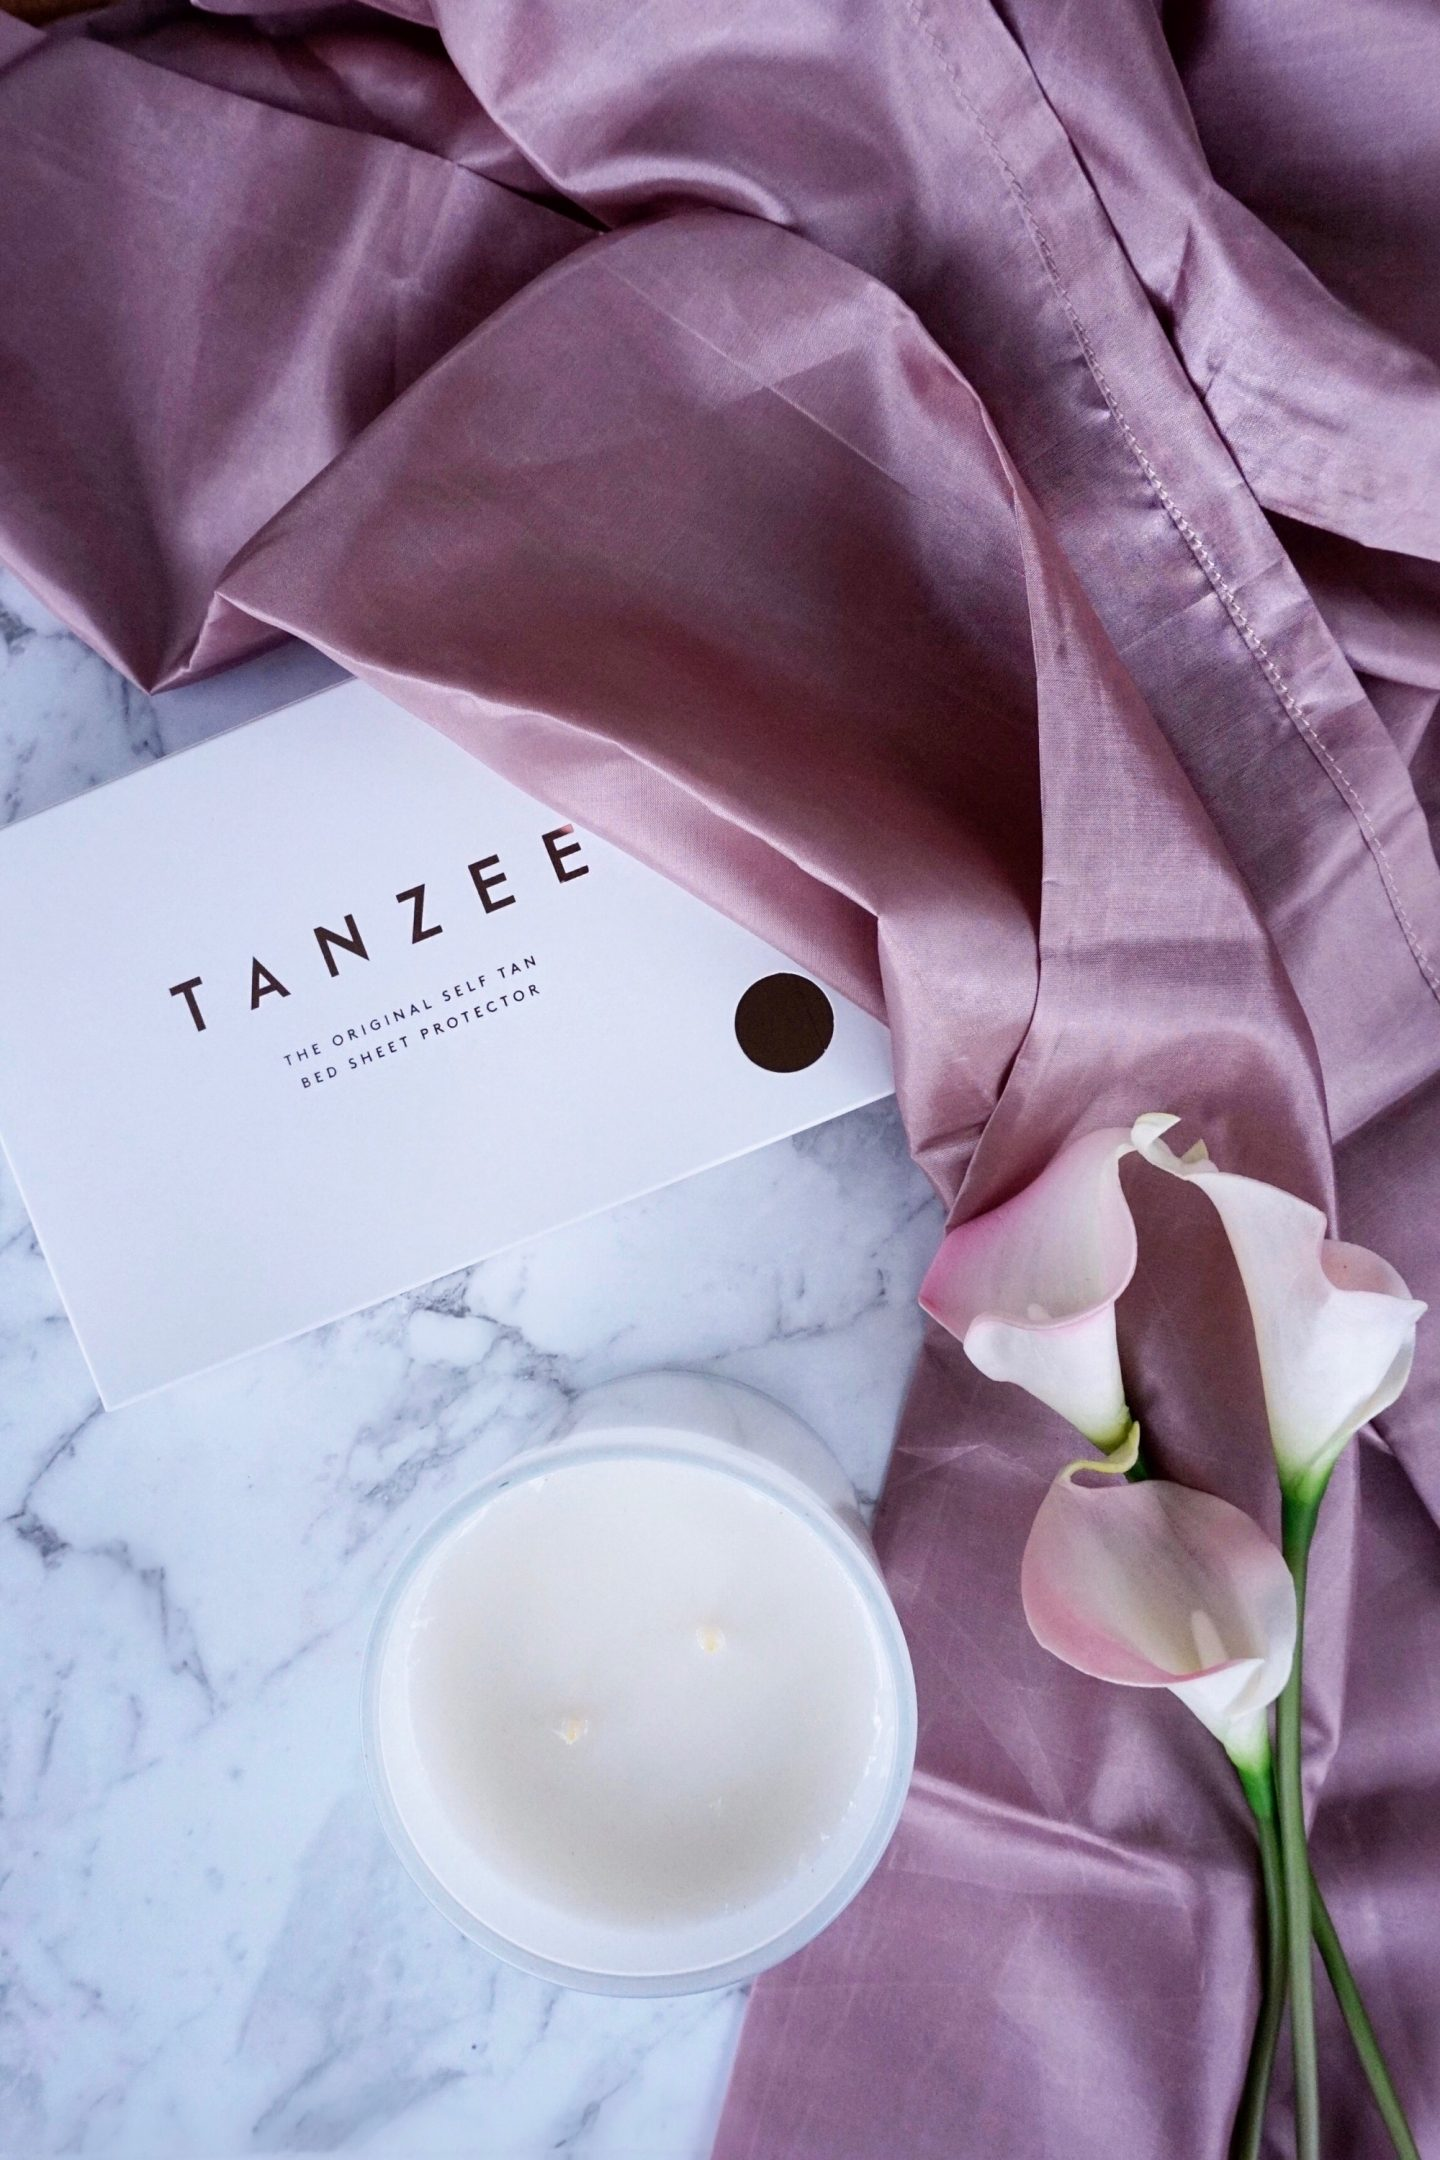 fake tanning, tanning, false tanning, tanzee, flatlay, beauty